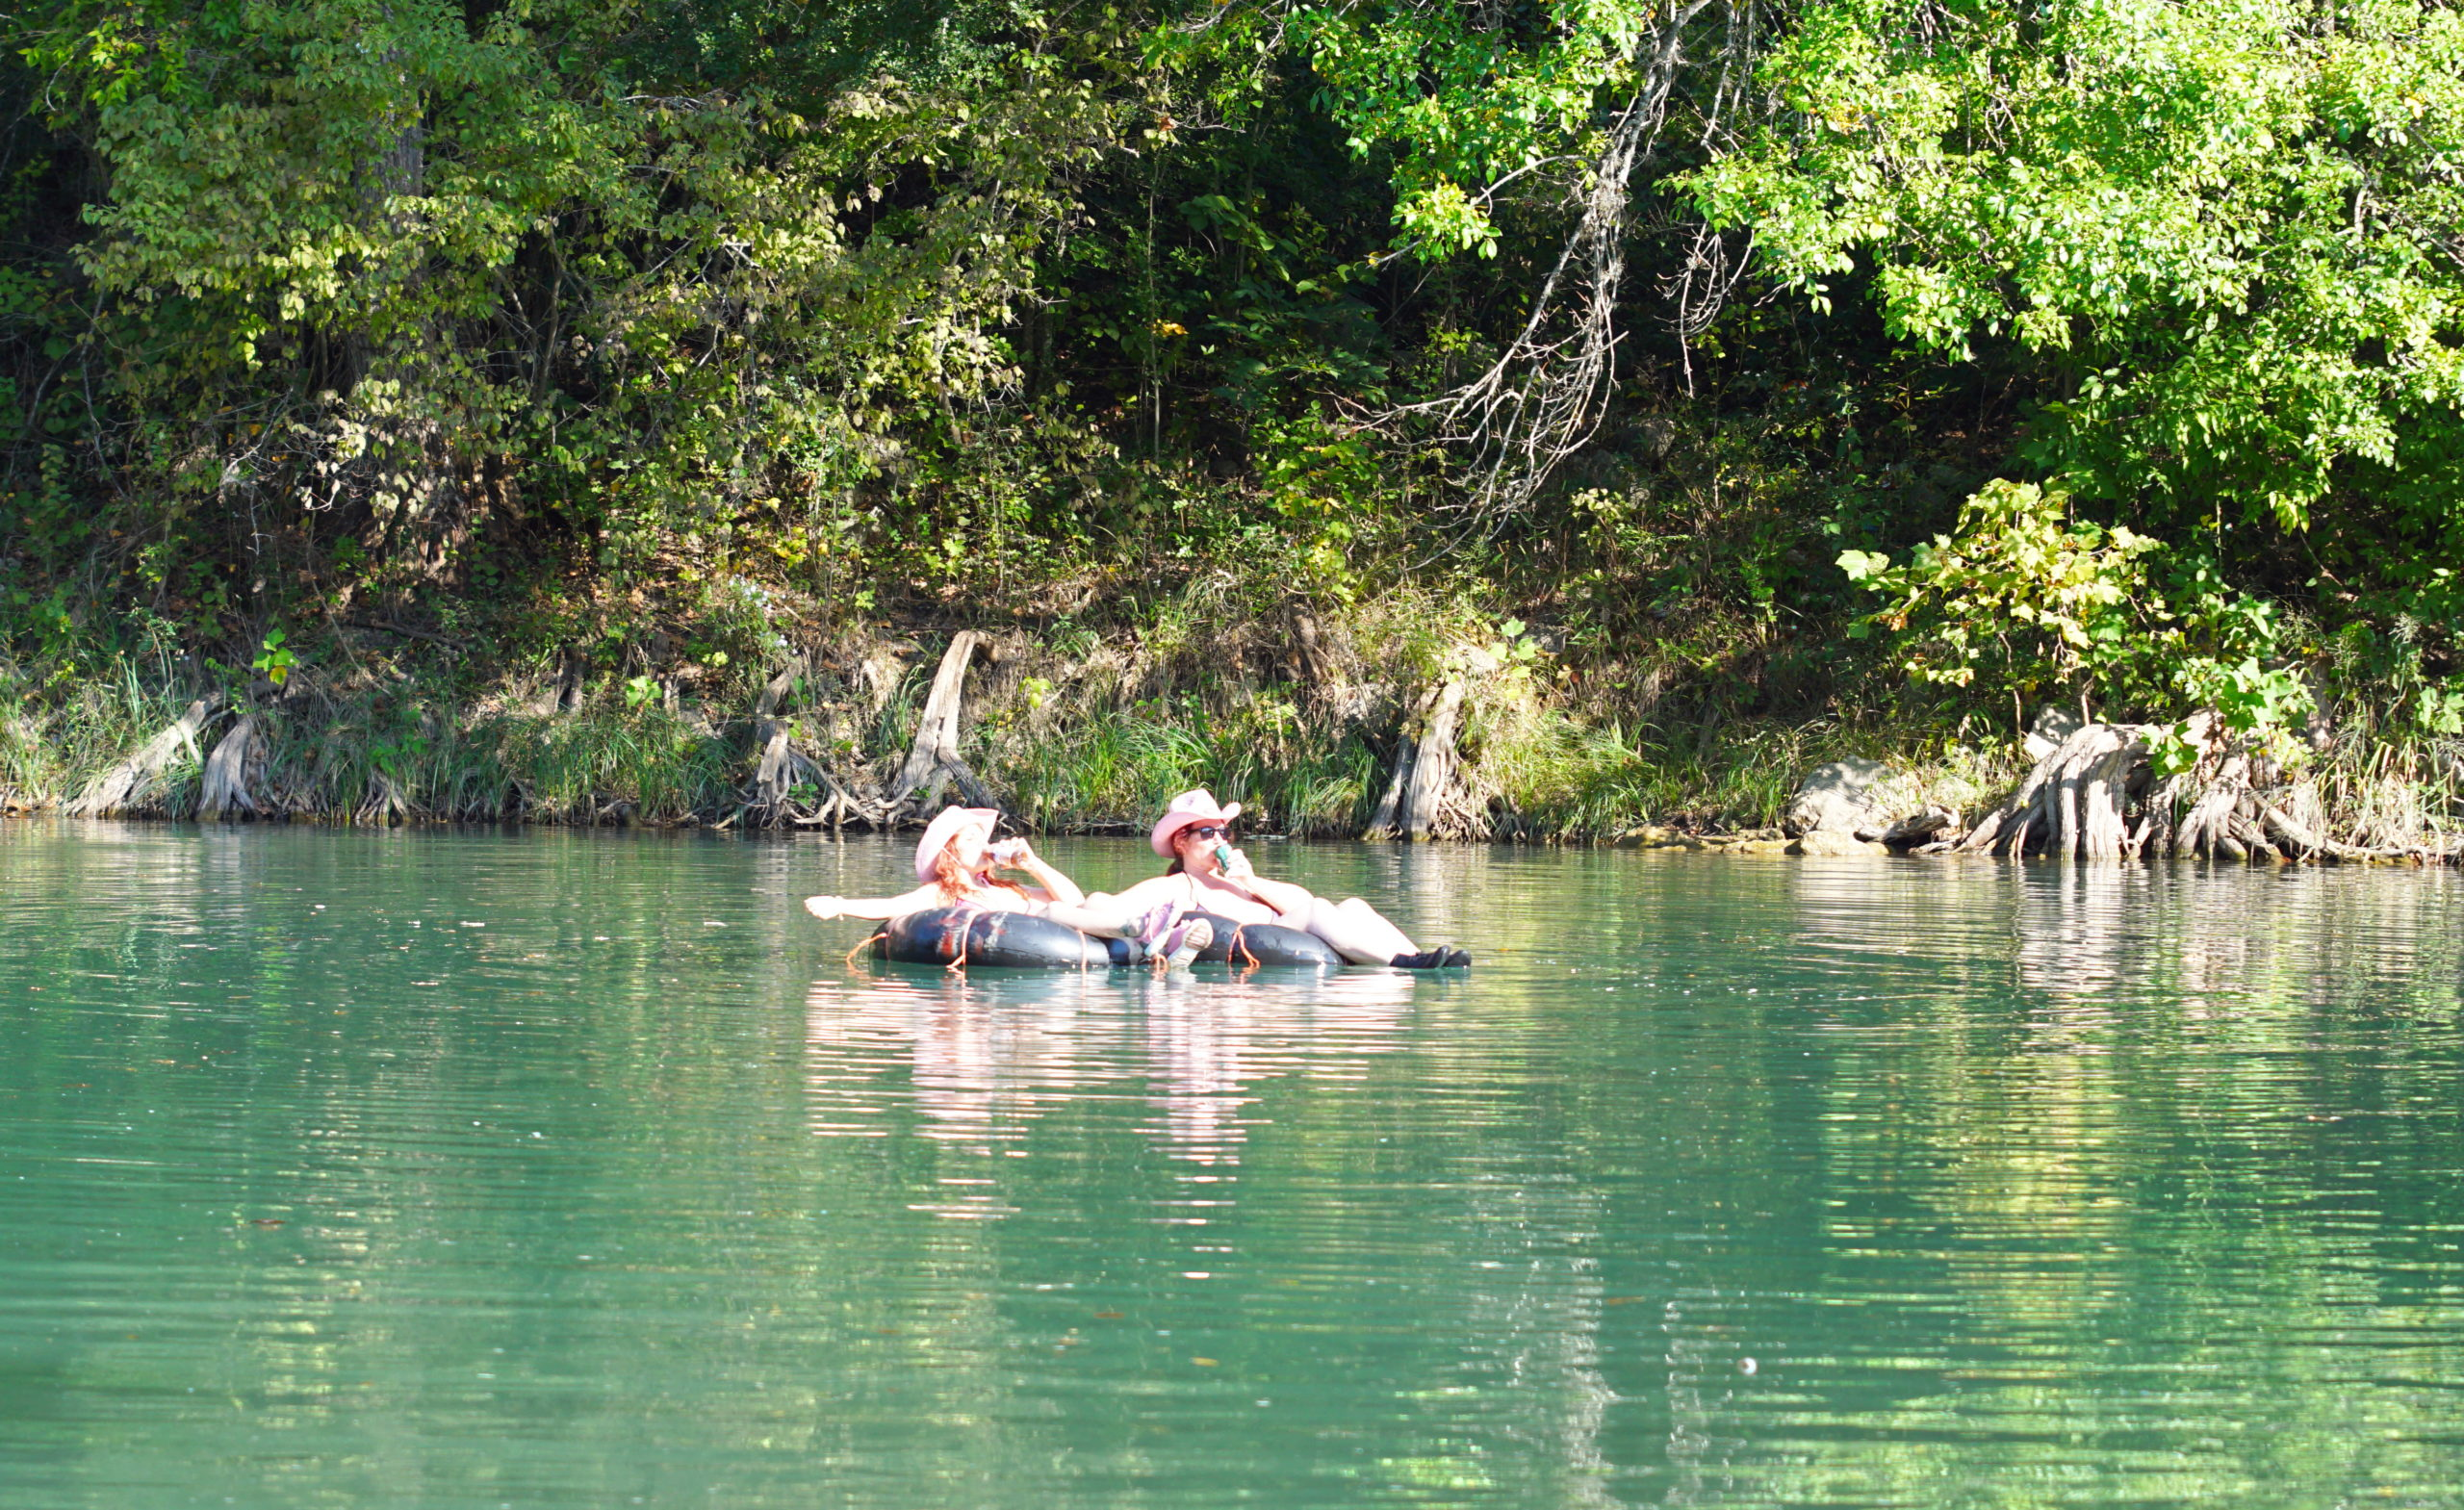 Tubing with friends on the mighty Guadalupe.